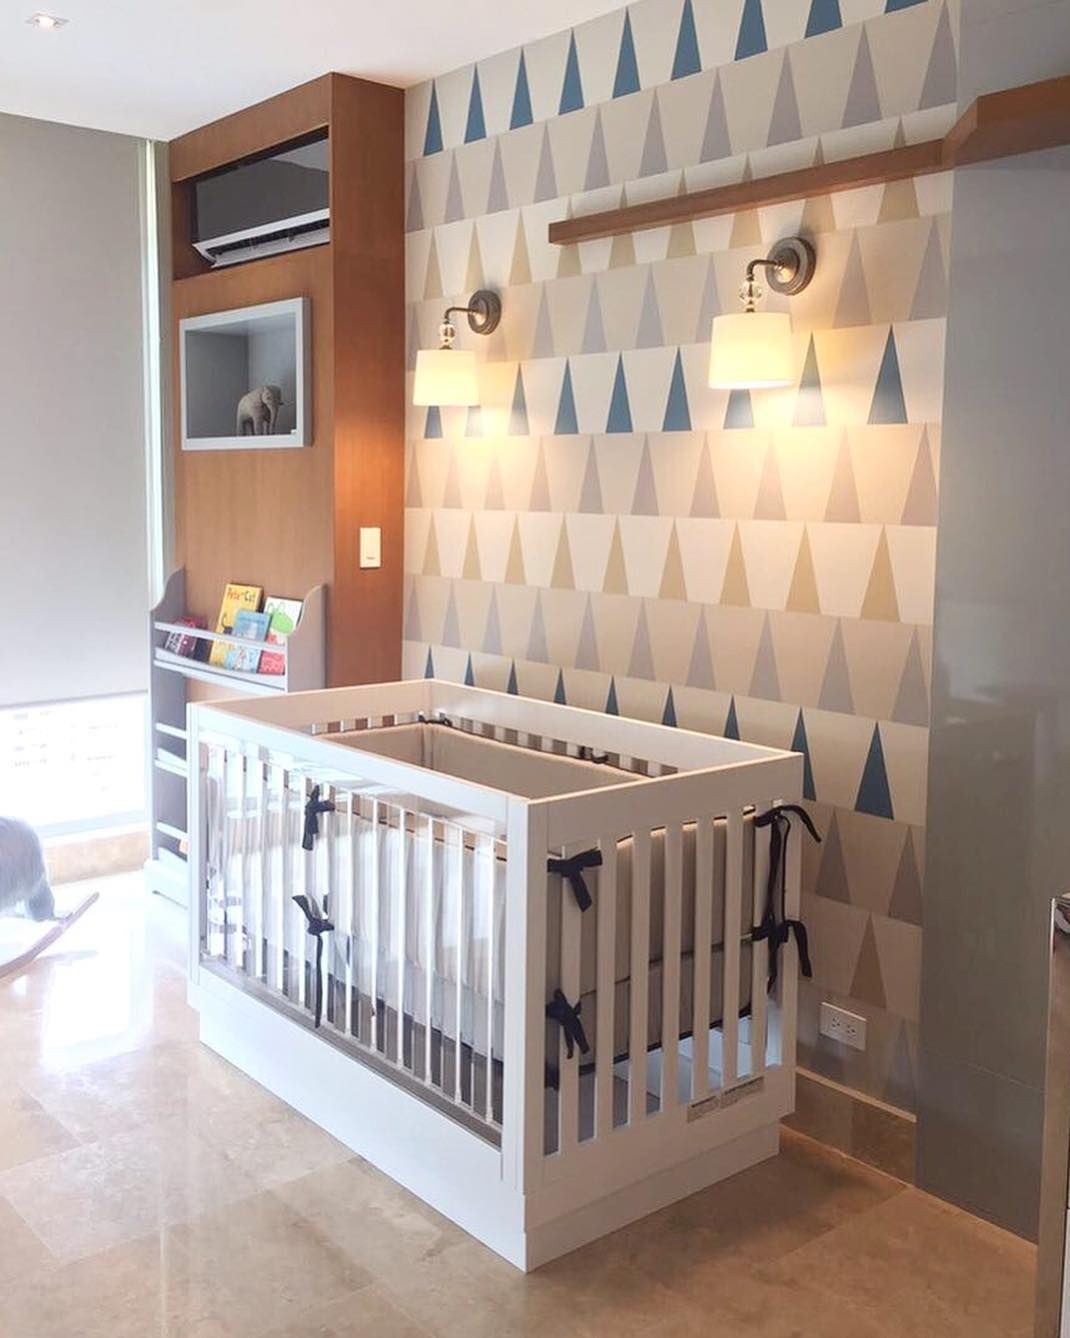 Cool Contemporary Looks Babyletto Harlow Crib Cribs Babyletto Crib Babyletto